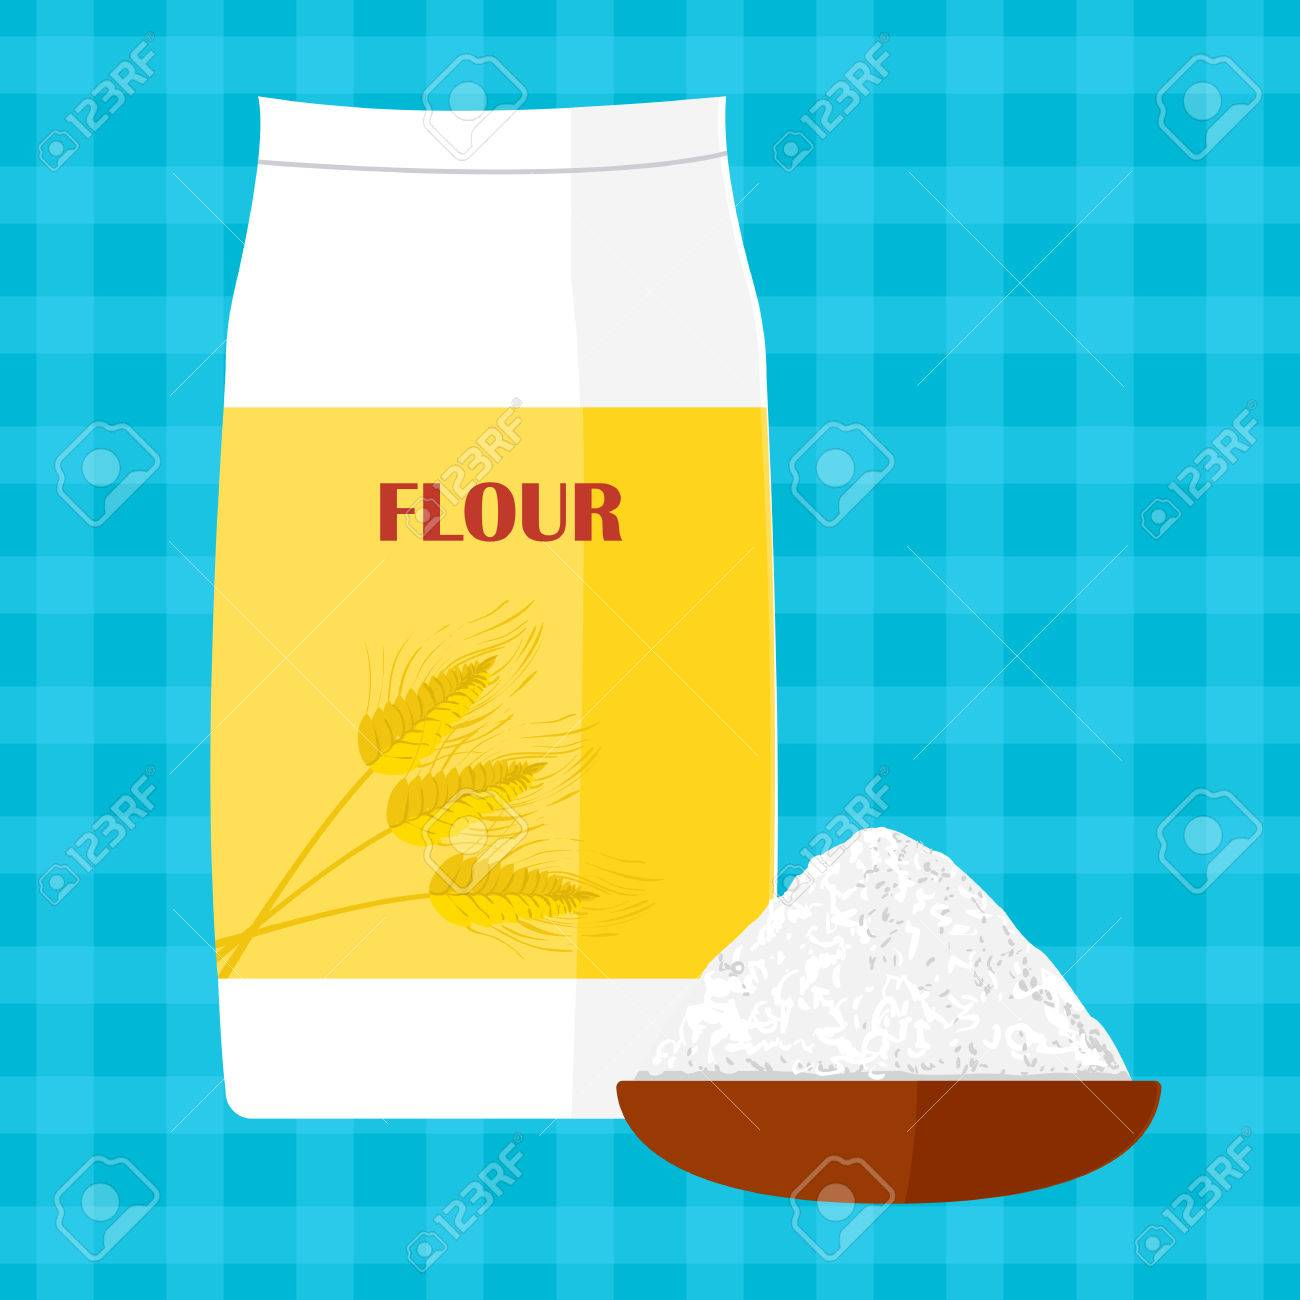 Colorful Illustration Of Package Of Flour. Baking And Cooking ...